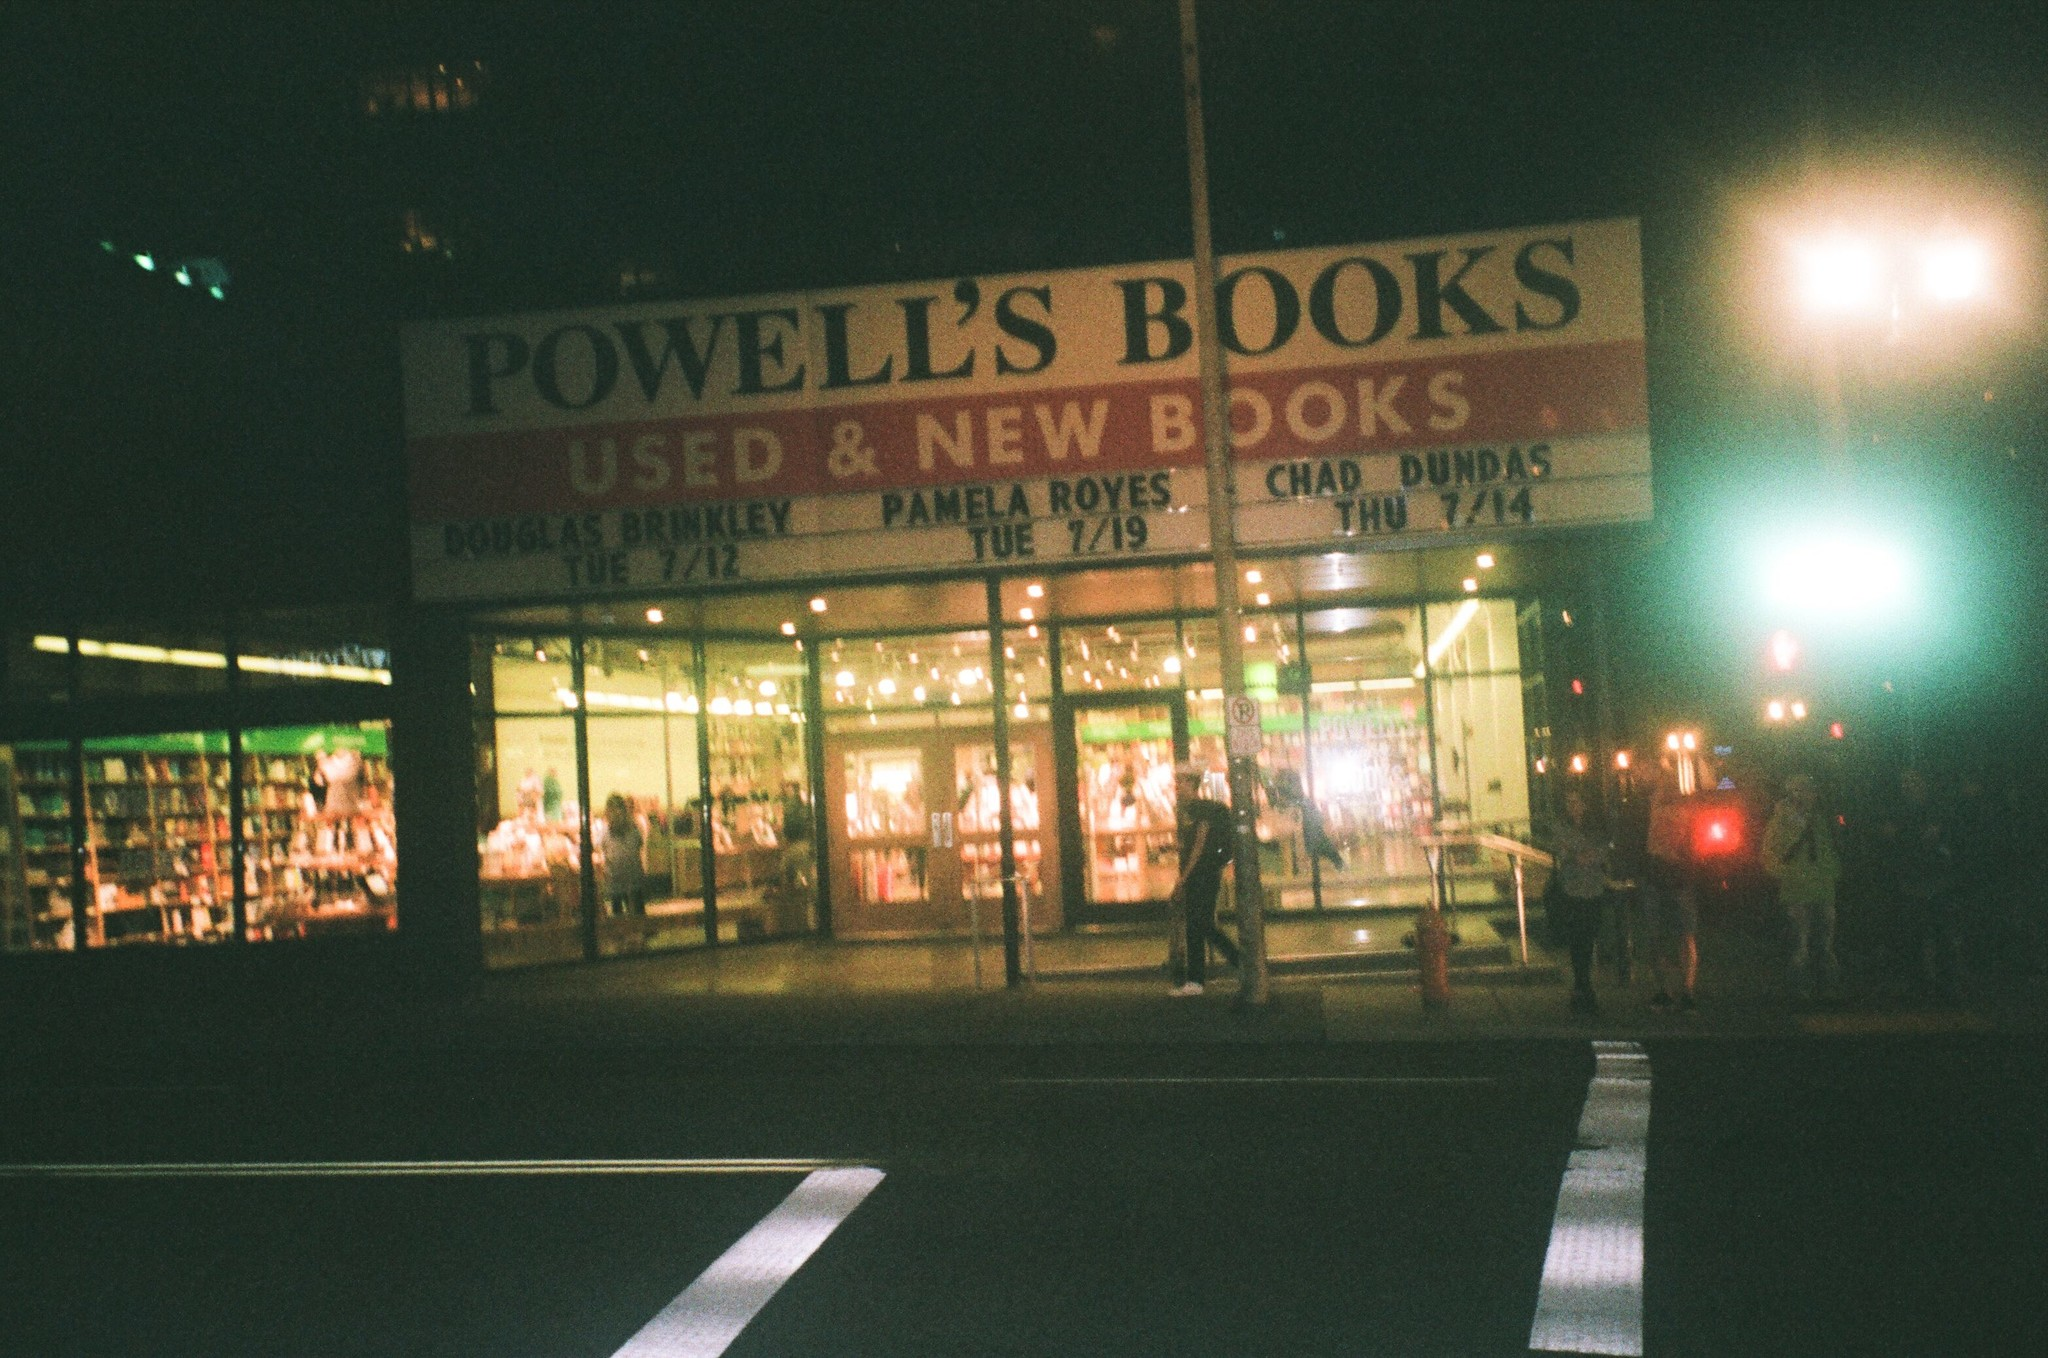 Powell's at night in Portland